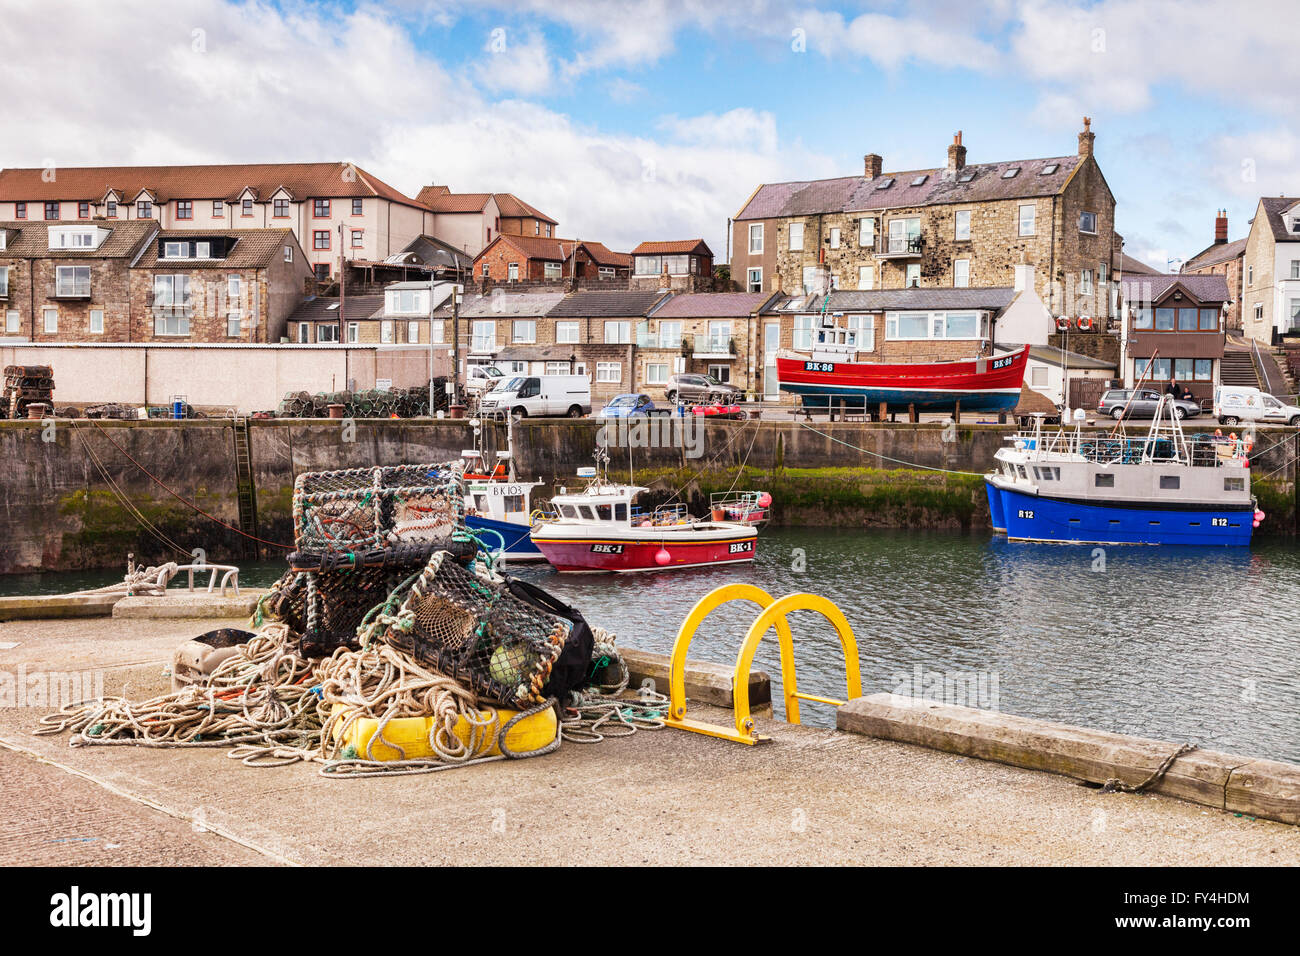 The Harbour at Seahouses, Northumberland, England, UK - Stock Image